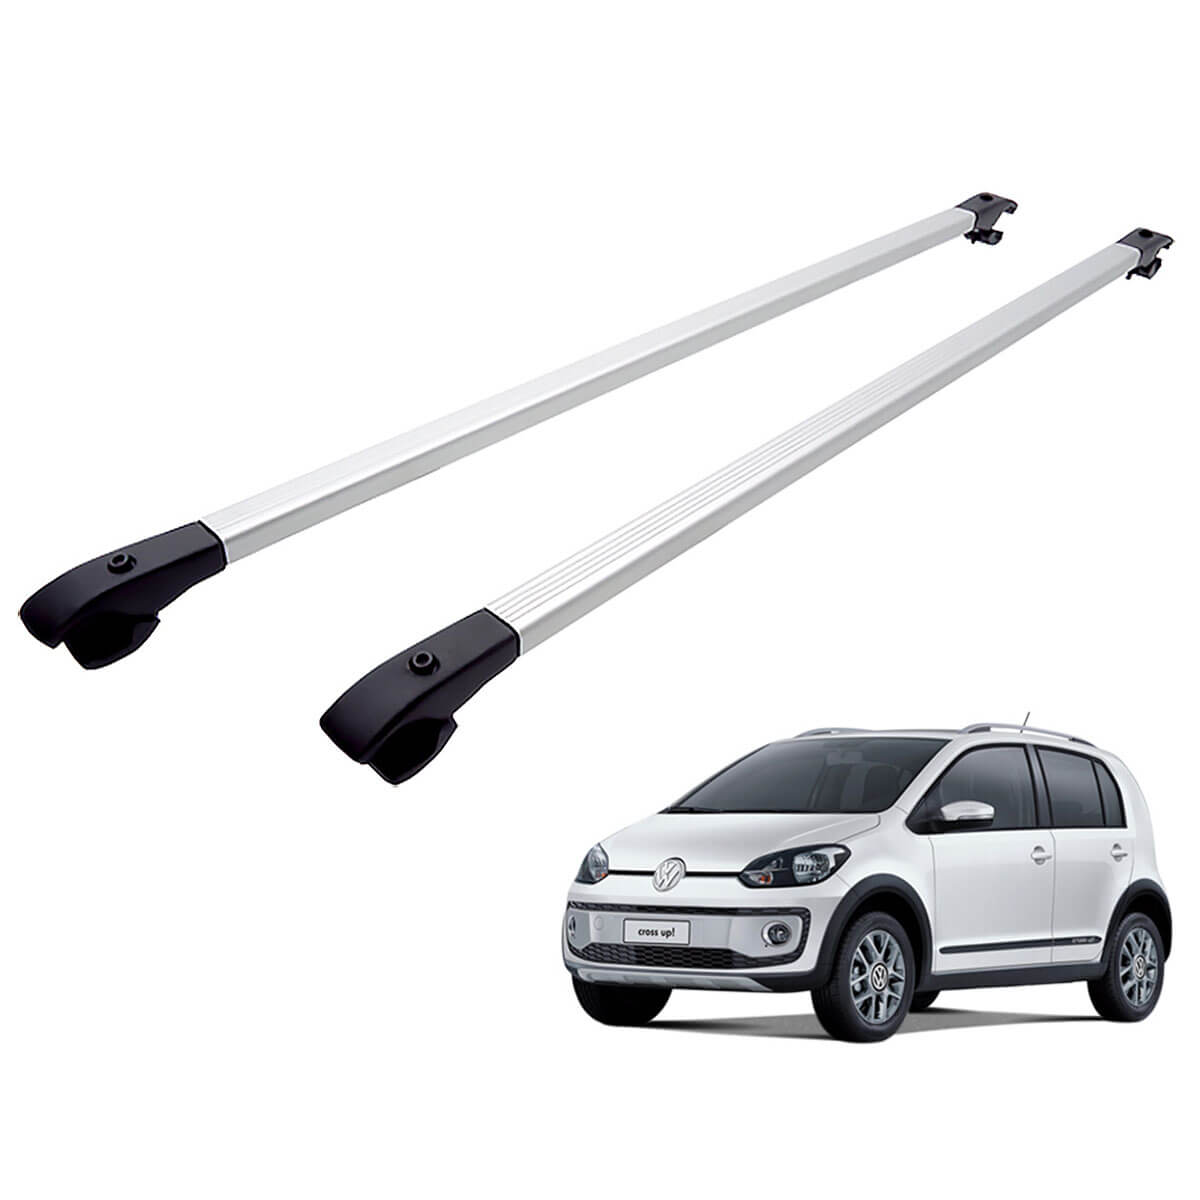 Travessa rack de teto alumínio UP! Cross VW up 2014 a 2018